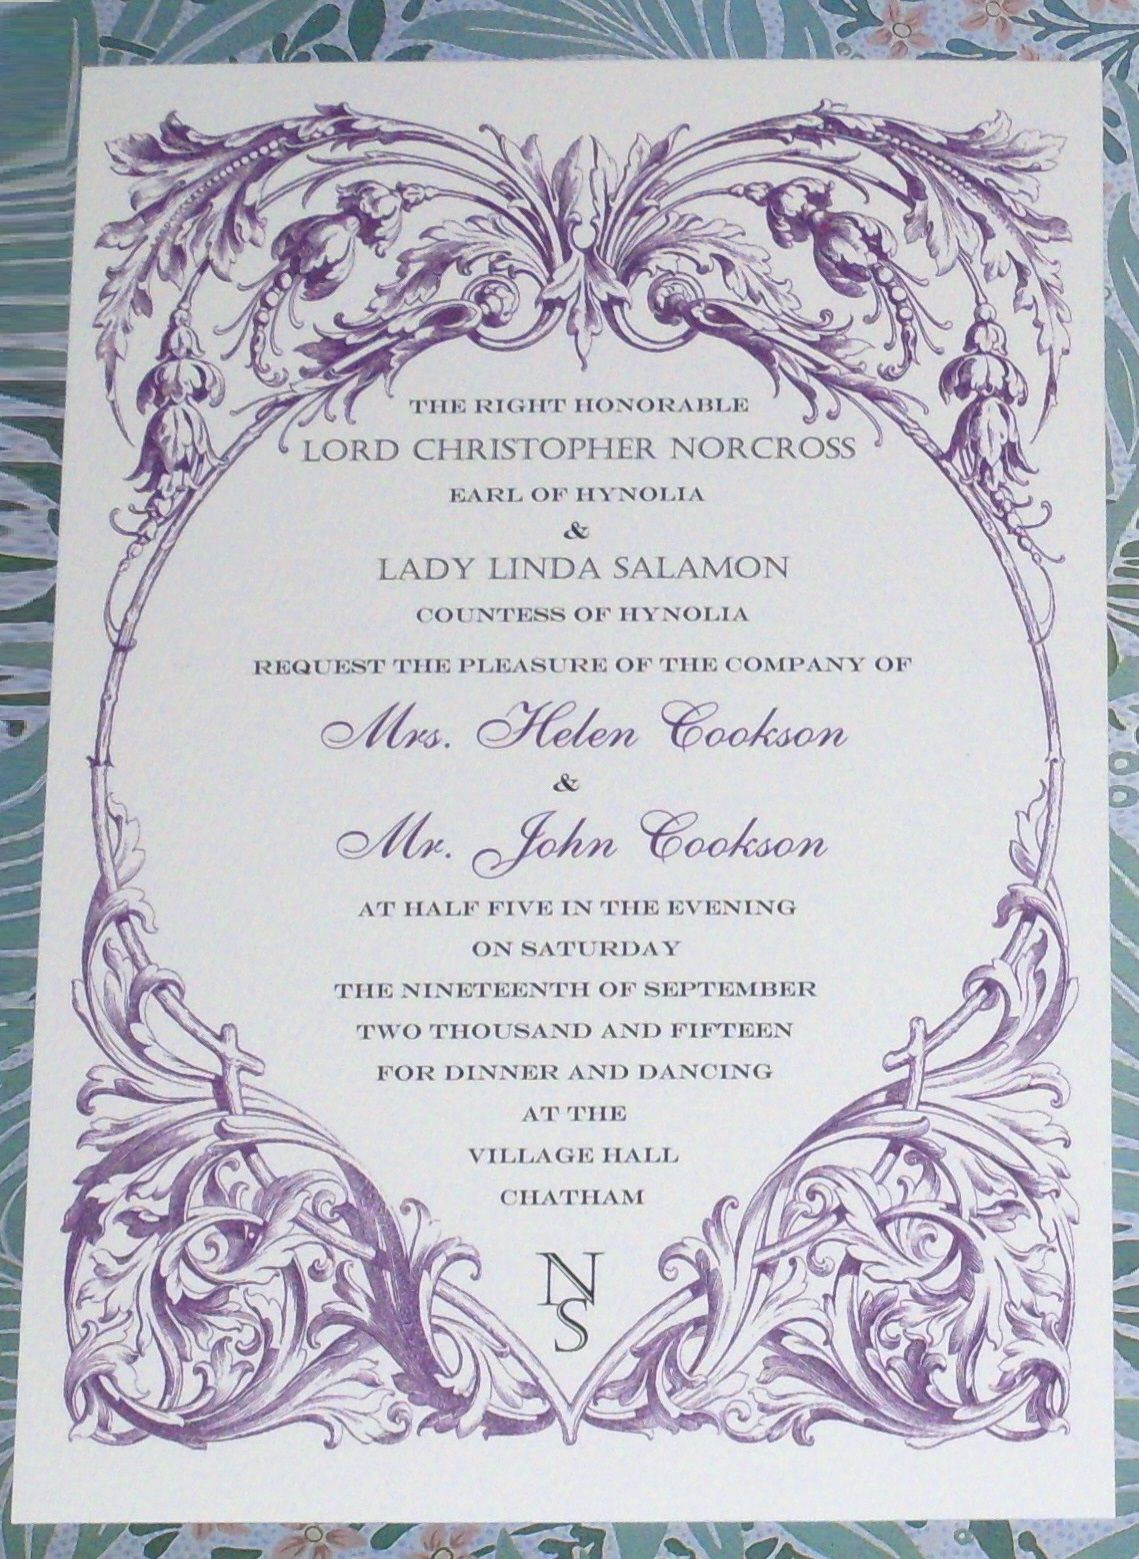 Downton Abbey Edwardian Dinner Party Or Wedding Invitation From